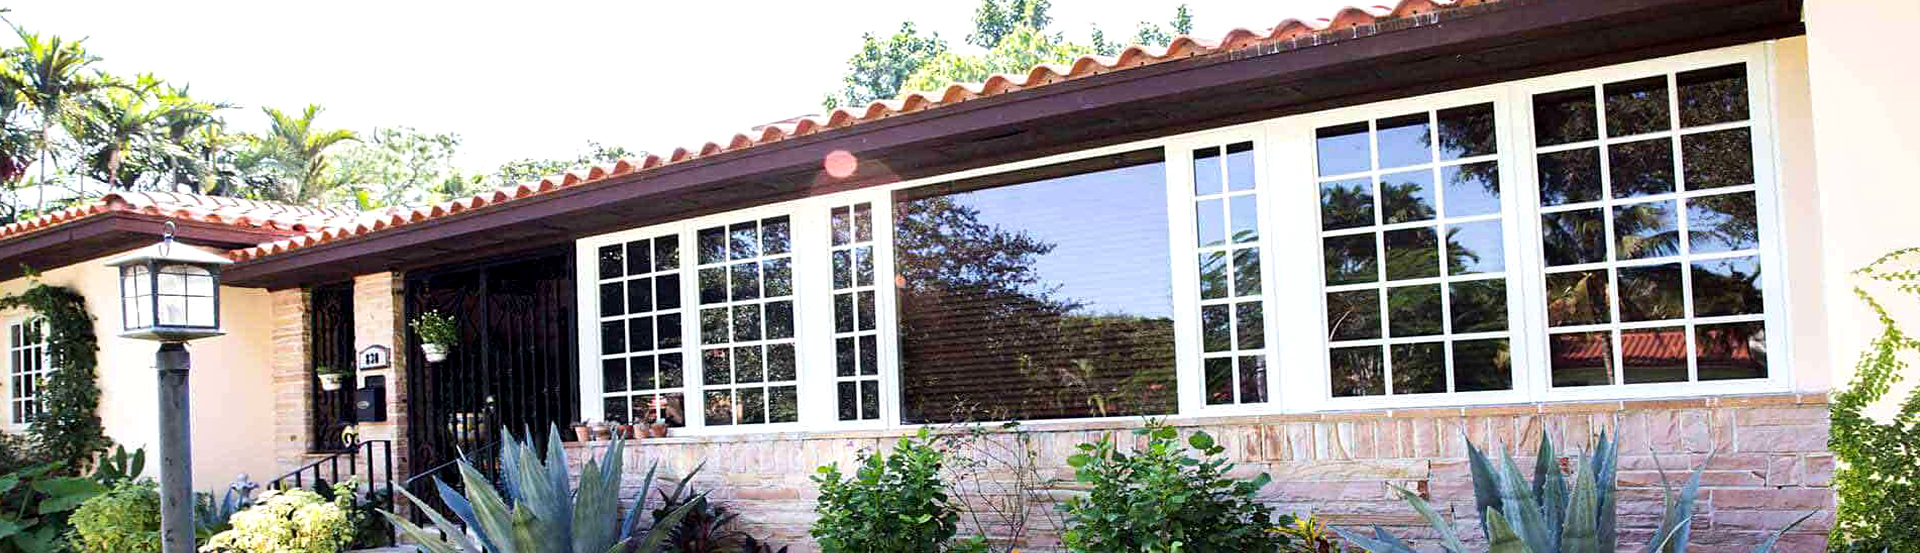 hurricane windows miami sliding protect your home and business with hurricane windows doors reduce cooling heating costs at the same time hurricane windows of miami impact doors